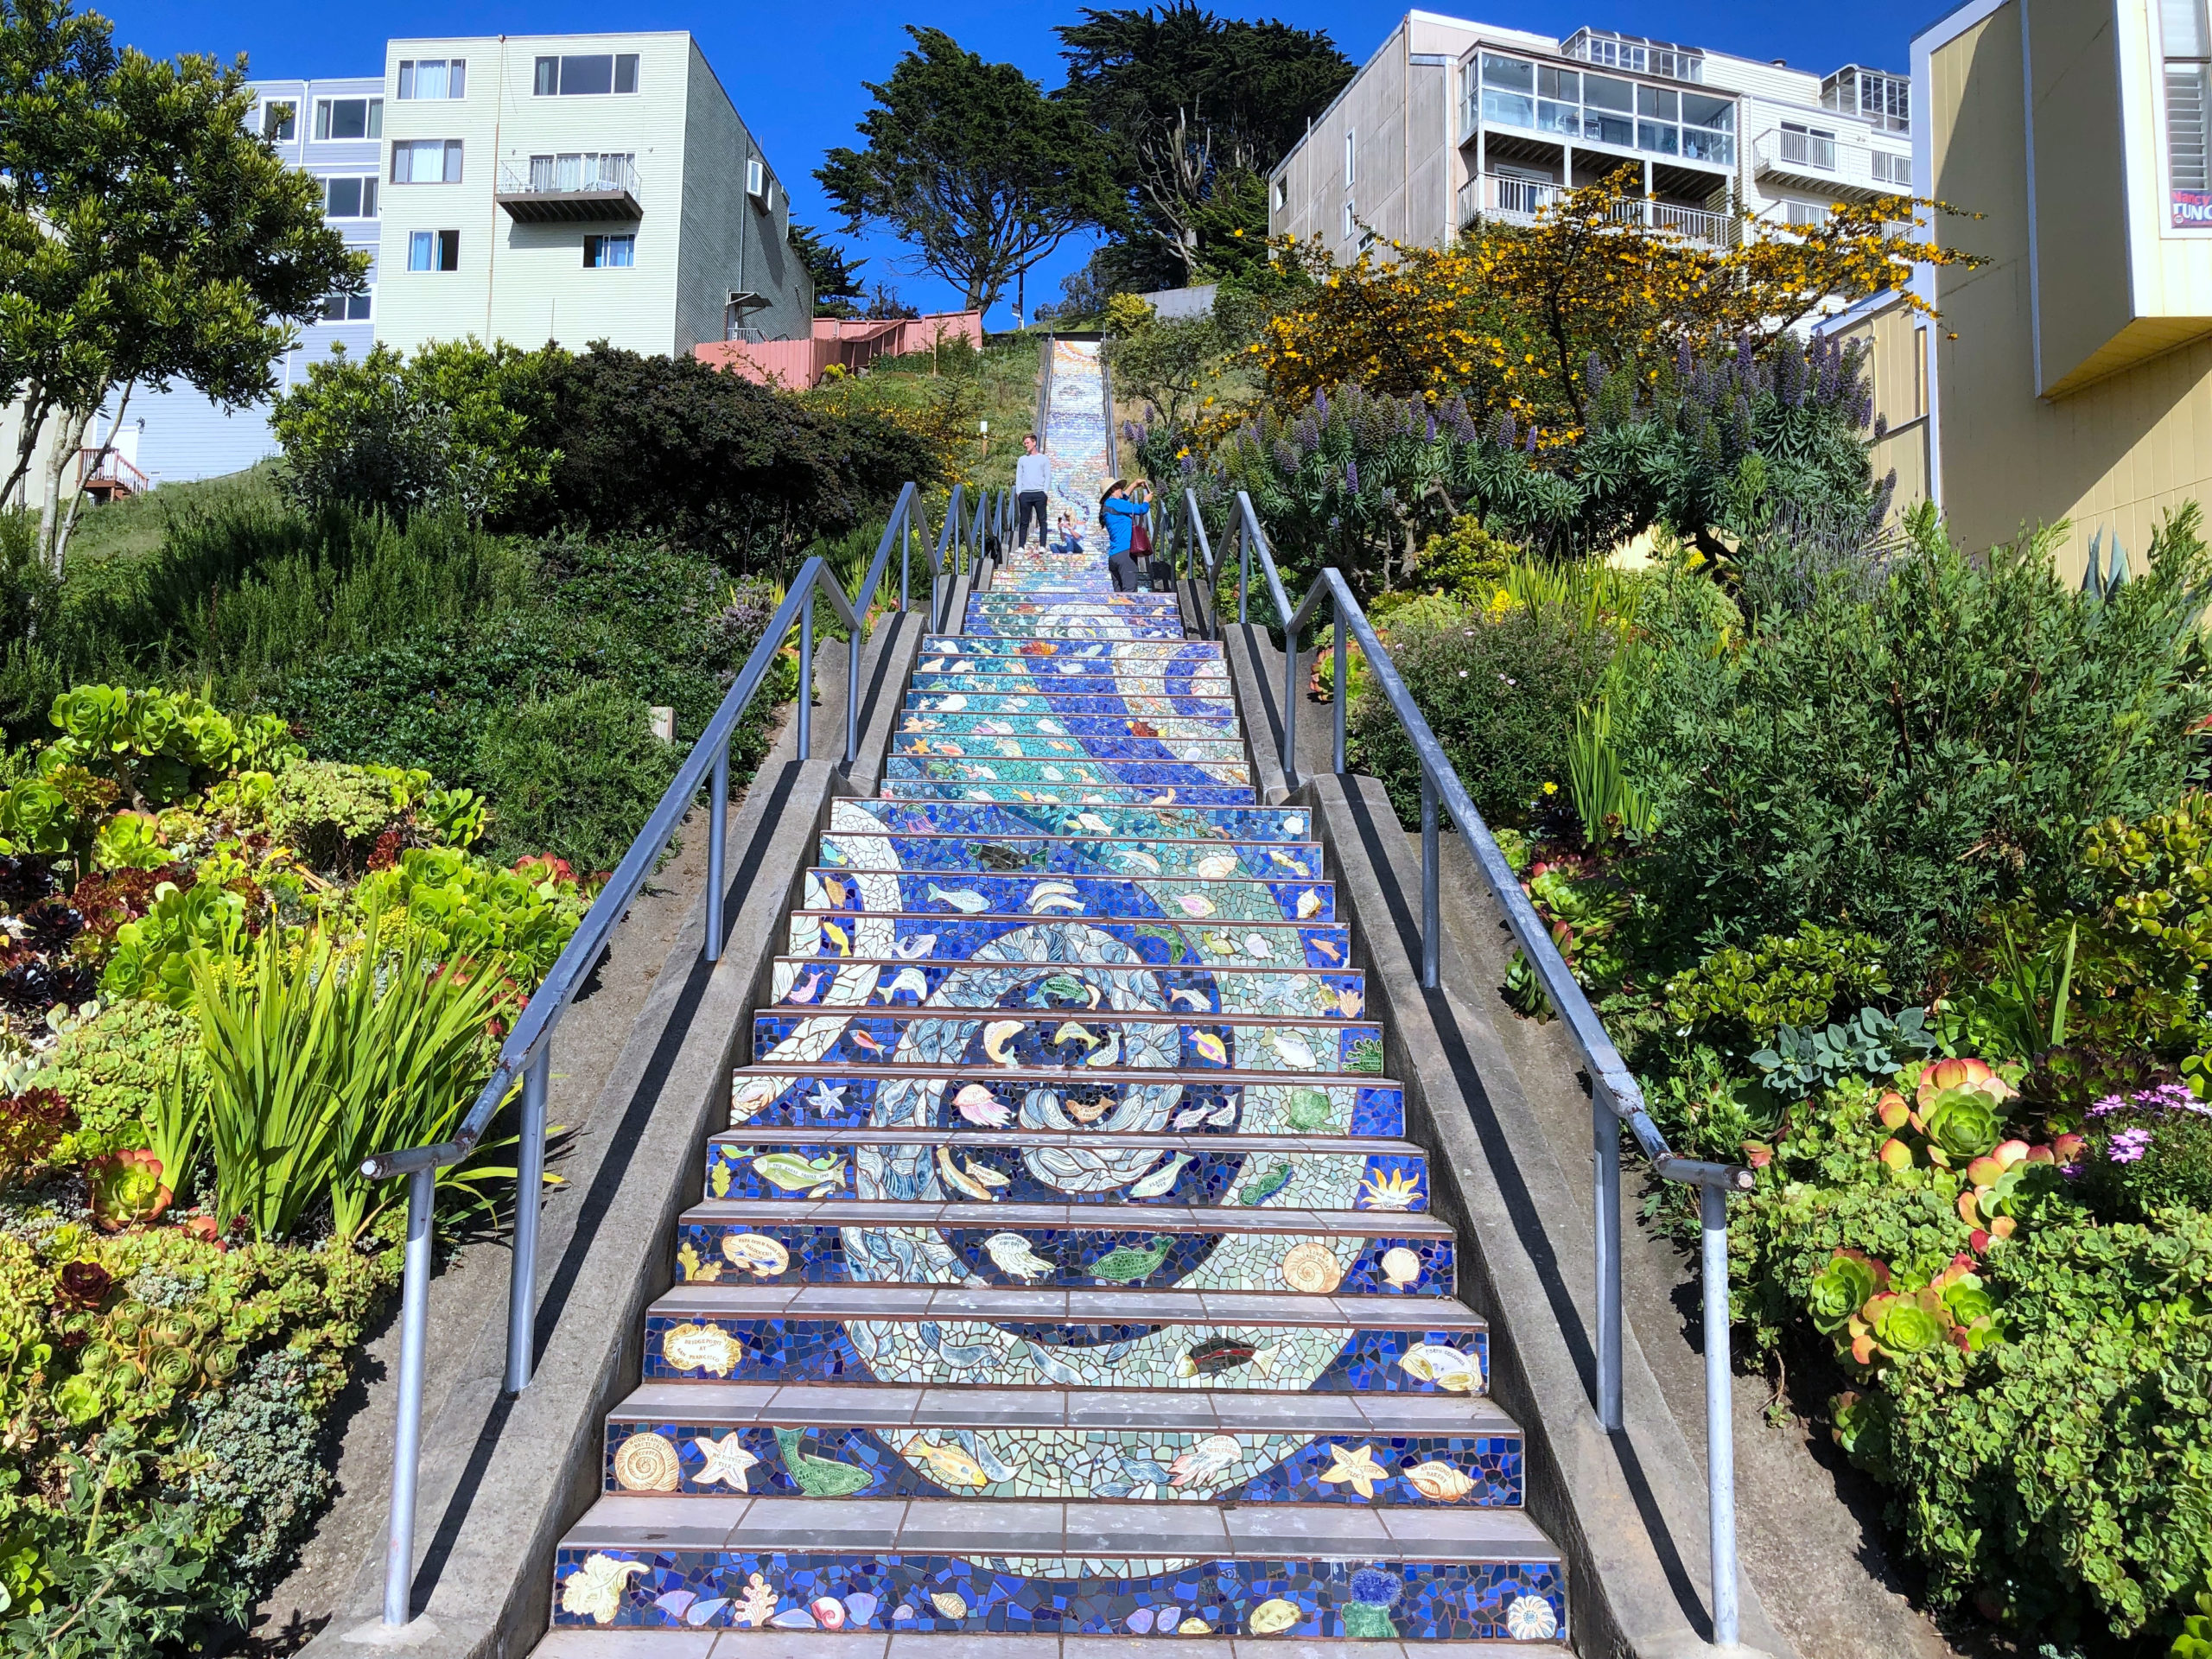 16th Avenue Tiled Steps with mosaic art